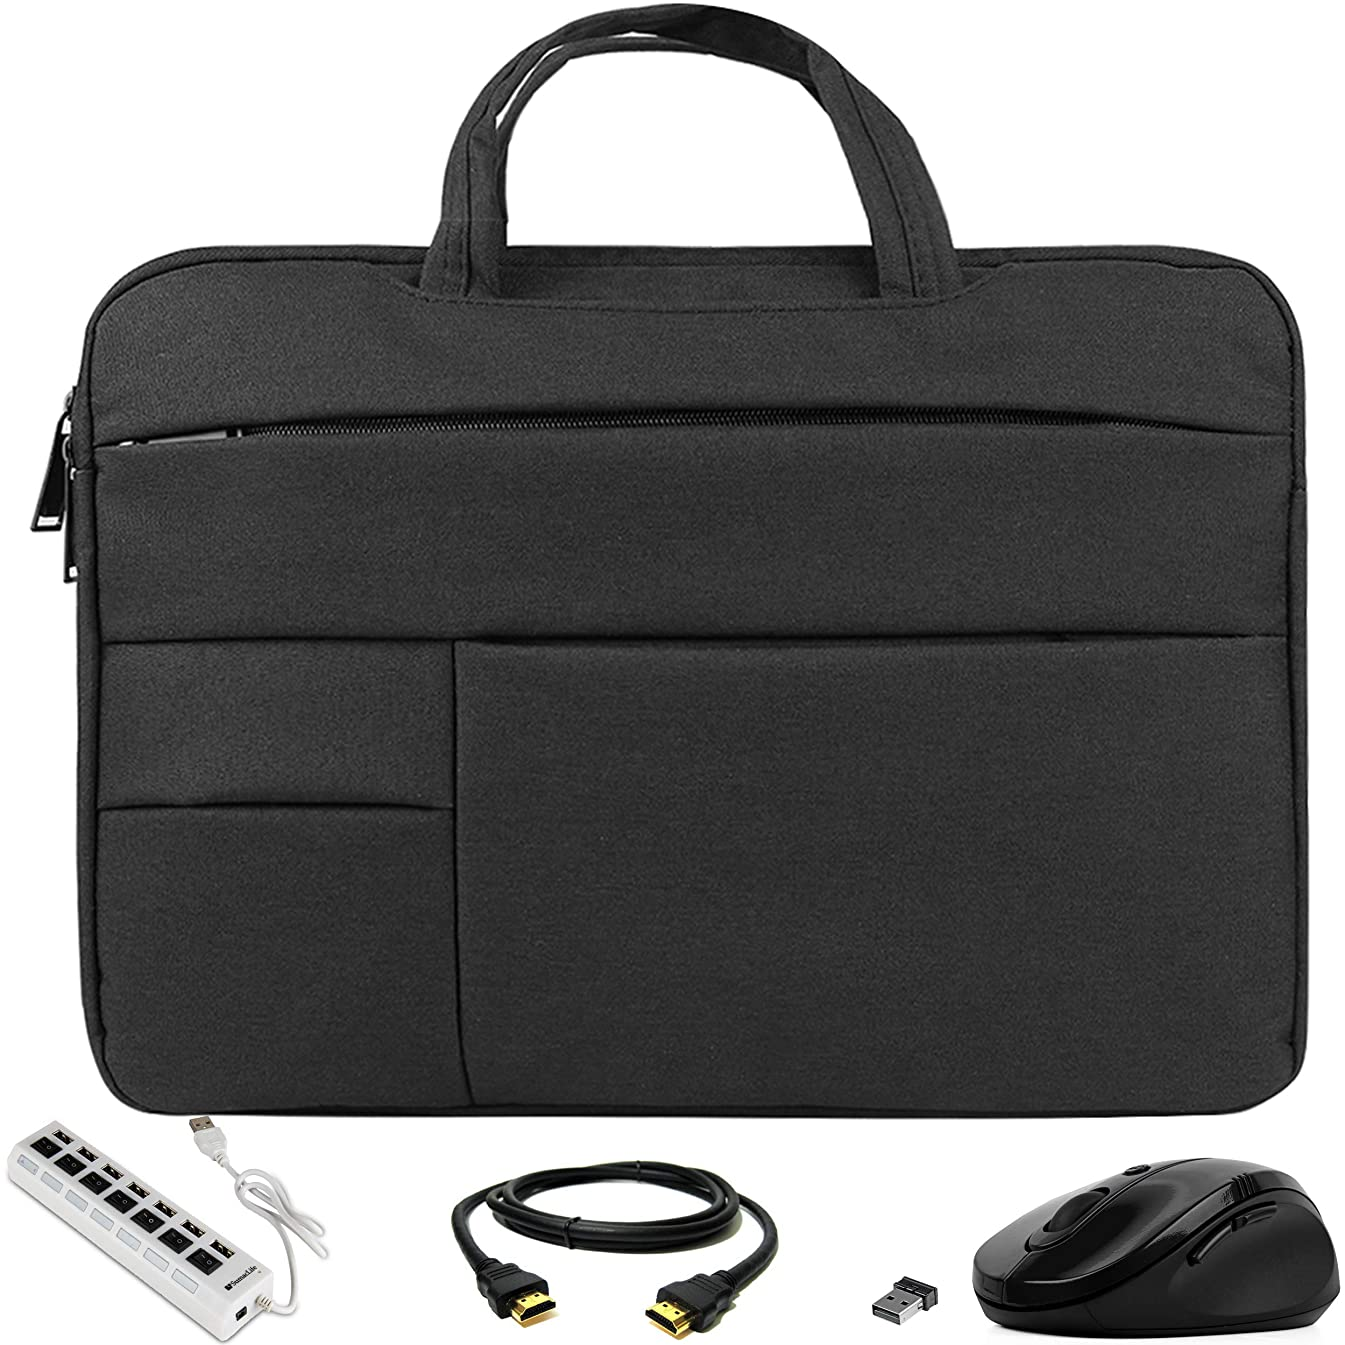 VG Bags Ultra-Slim Black 14-inch Laptop Sleeve Bag with USB Hub, Mouse, and HDMI Cable for Lenovo IdeaPad, Flex, ThinkPad, Yoga, ChromeBook 14